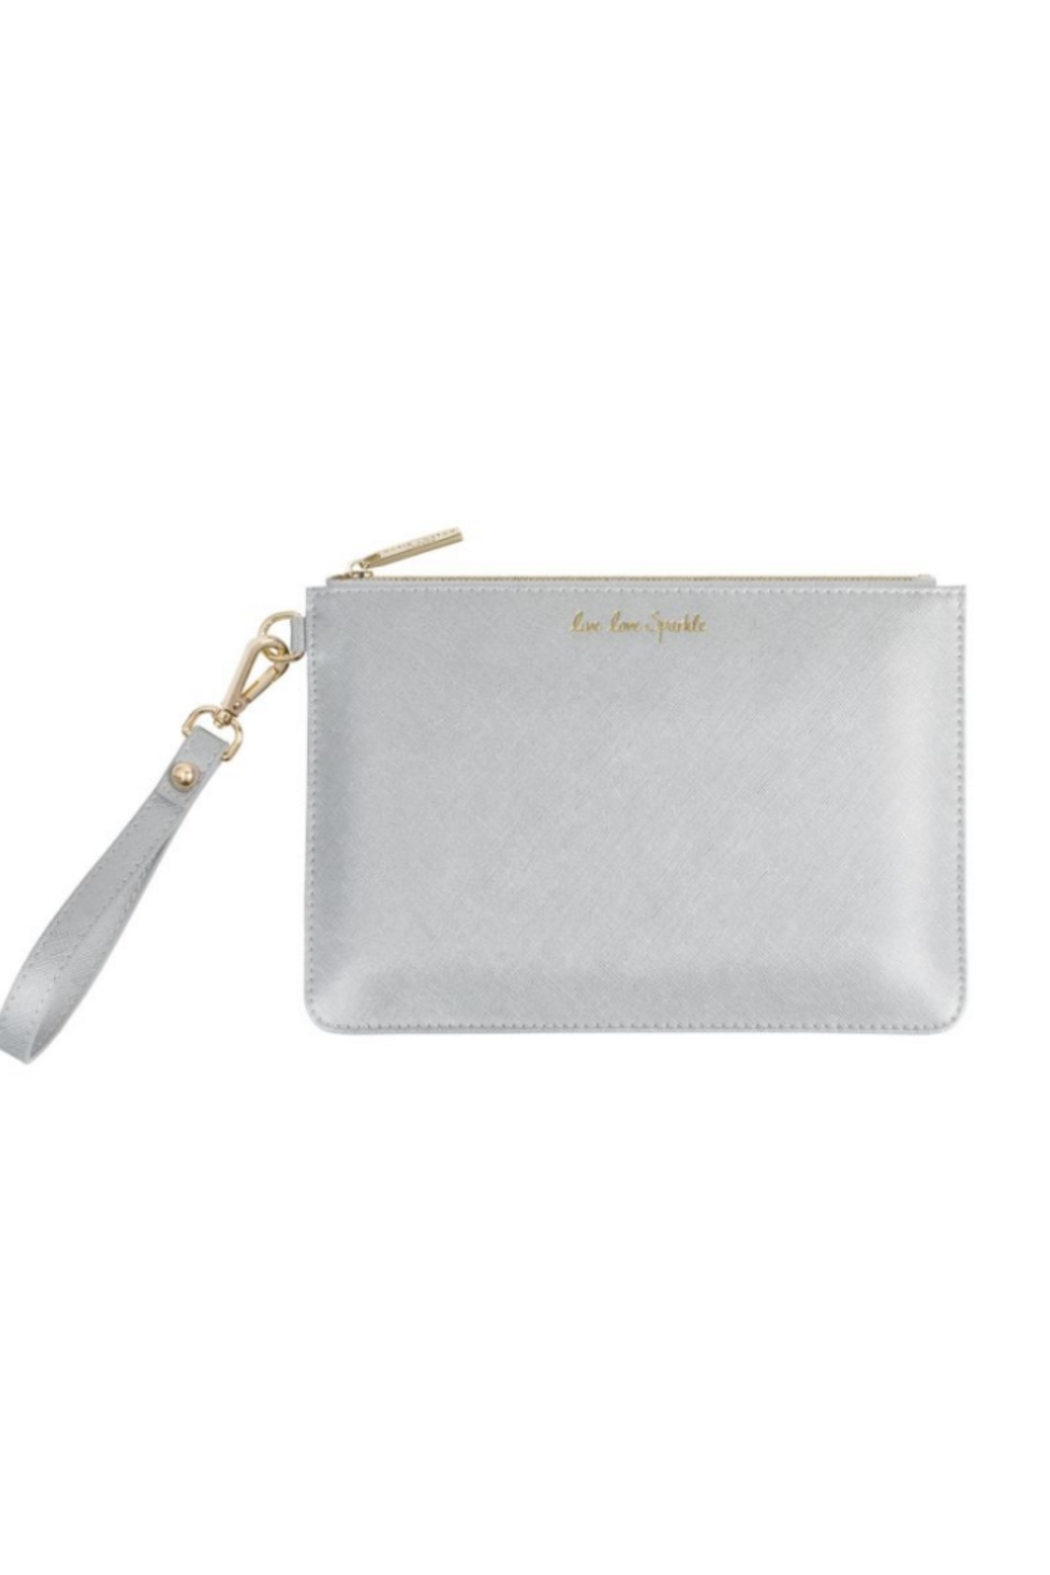 Katie Loxton SECRET MESSAGE POUCH   LIVE LOVE SPARKLE, A REMINDER TO LIVE LOVE SPARKLE EVERY DAY - Main Image